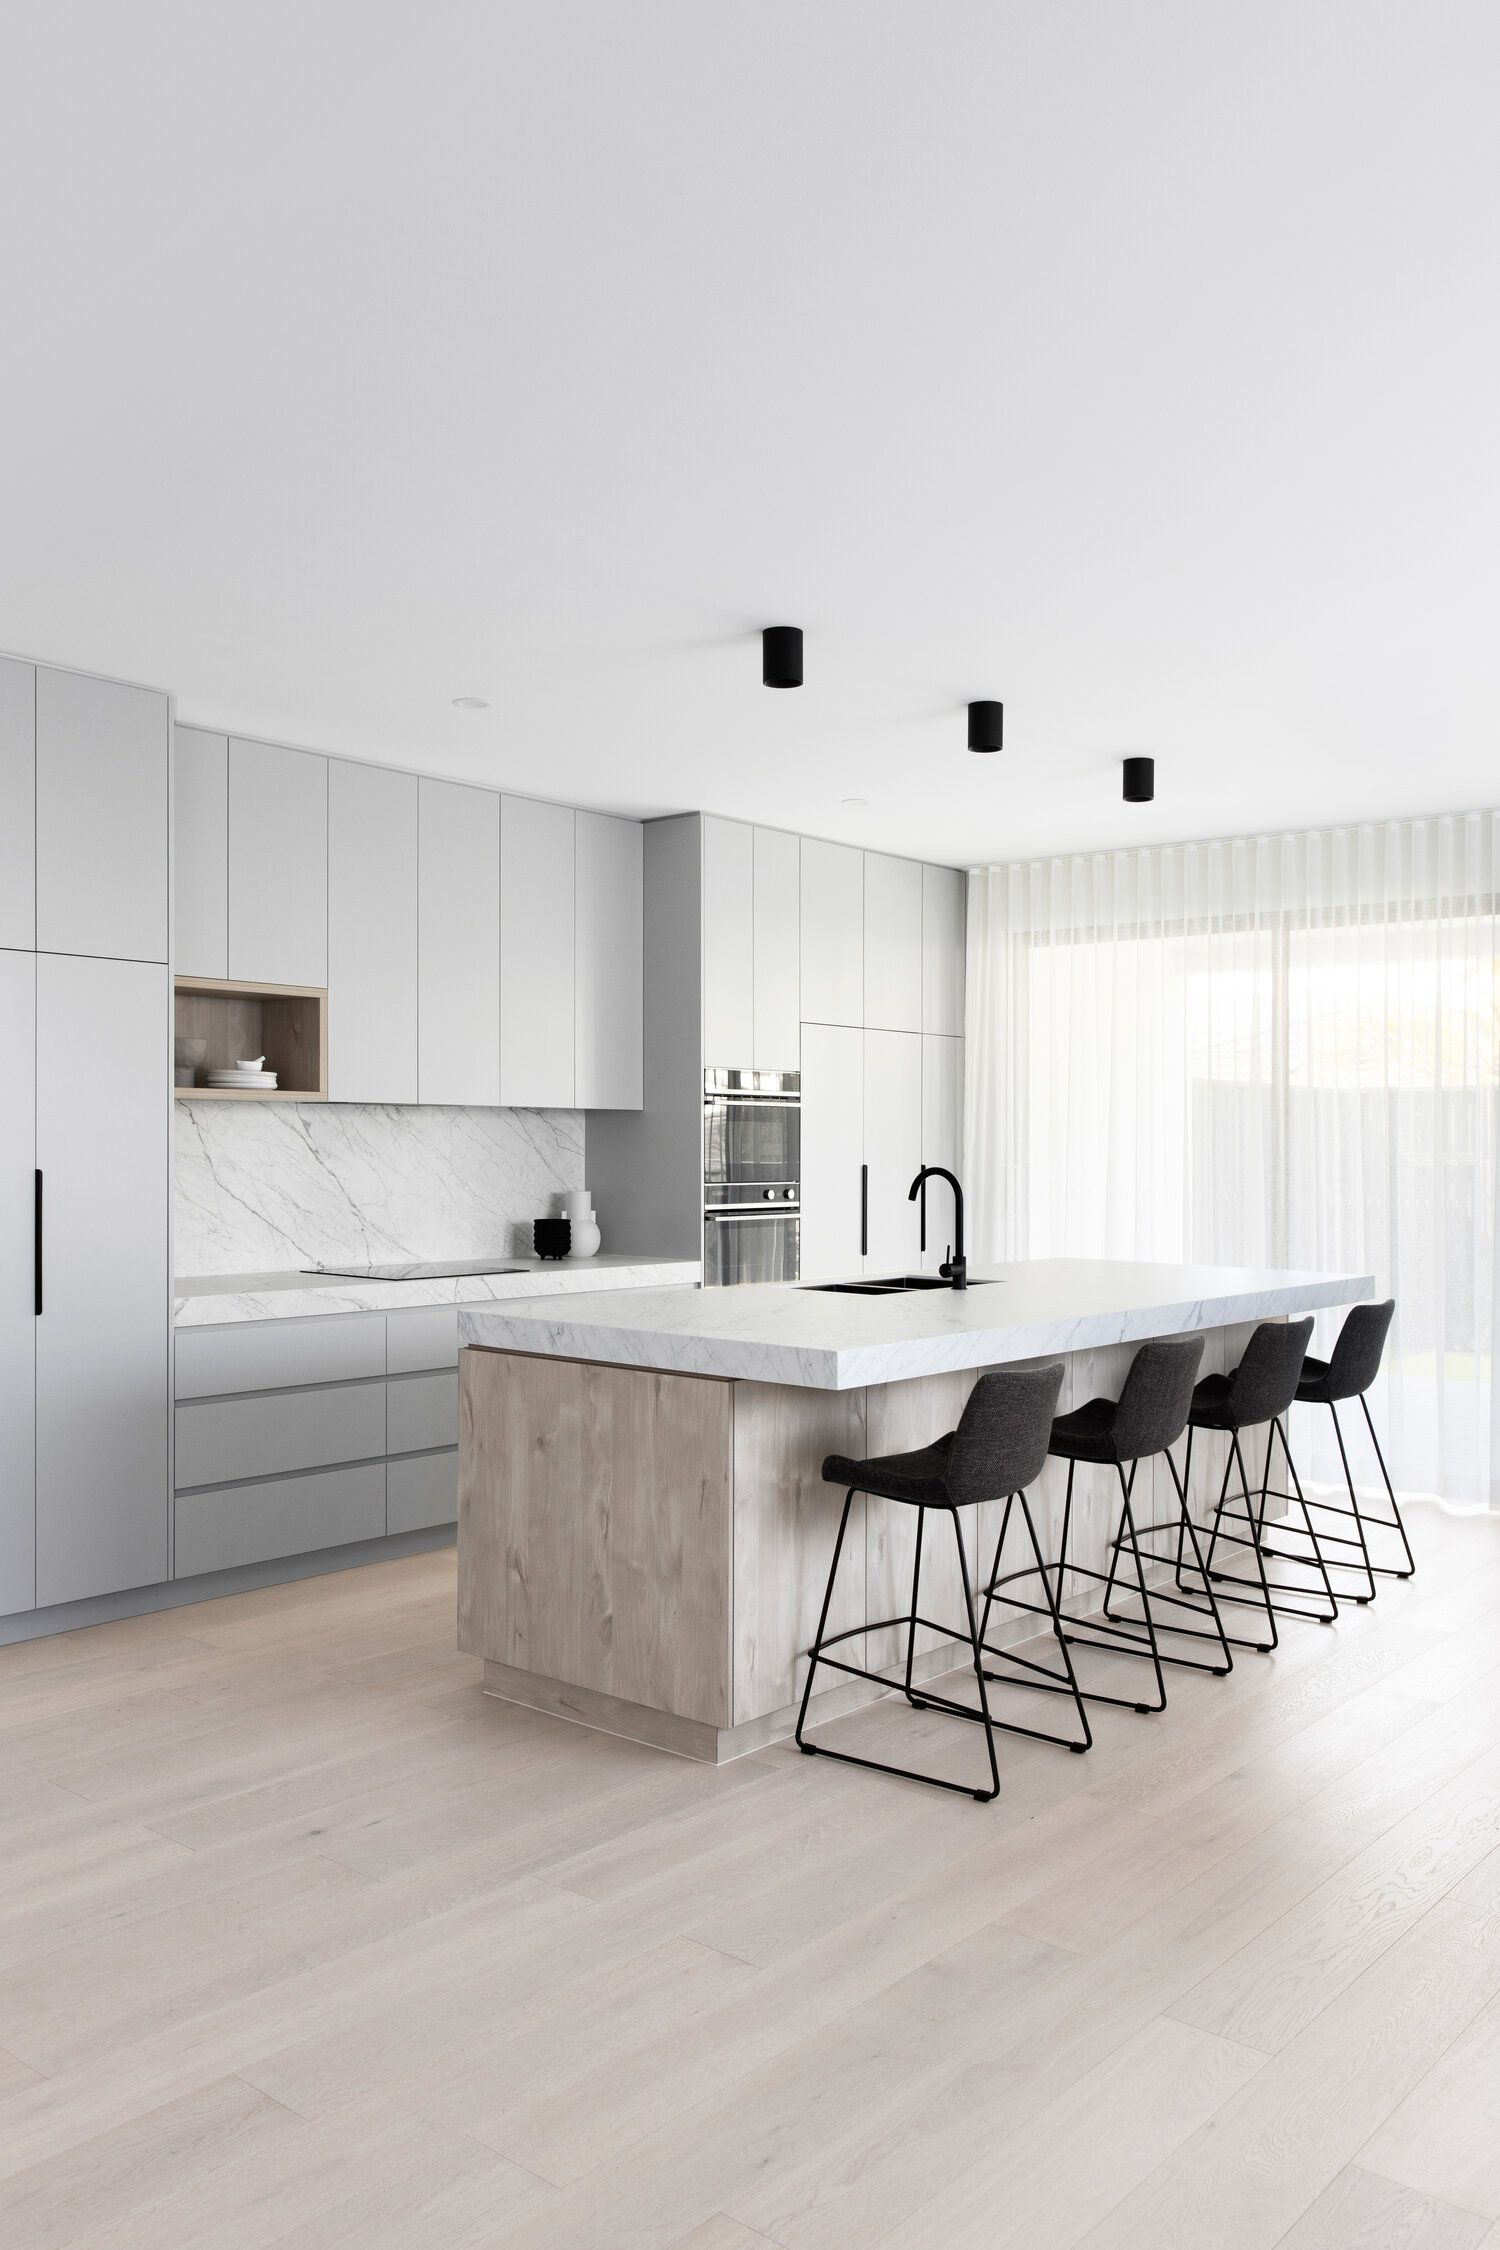 7 Reasons Porcelain Bench Tops Tick All The Boxes